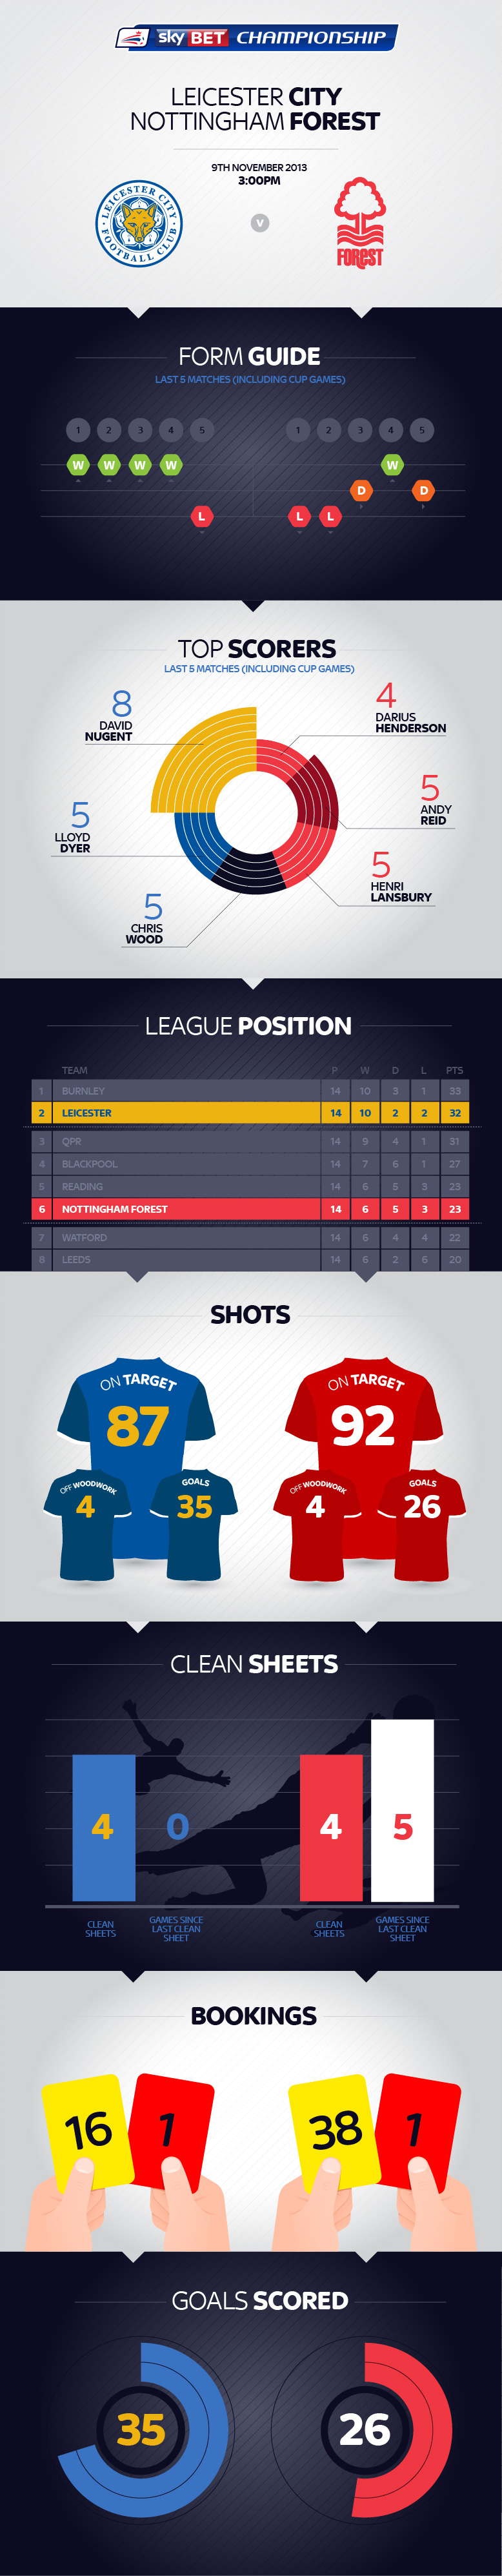 Leicester City vs Nottingham Forest Football Infographic